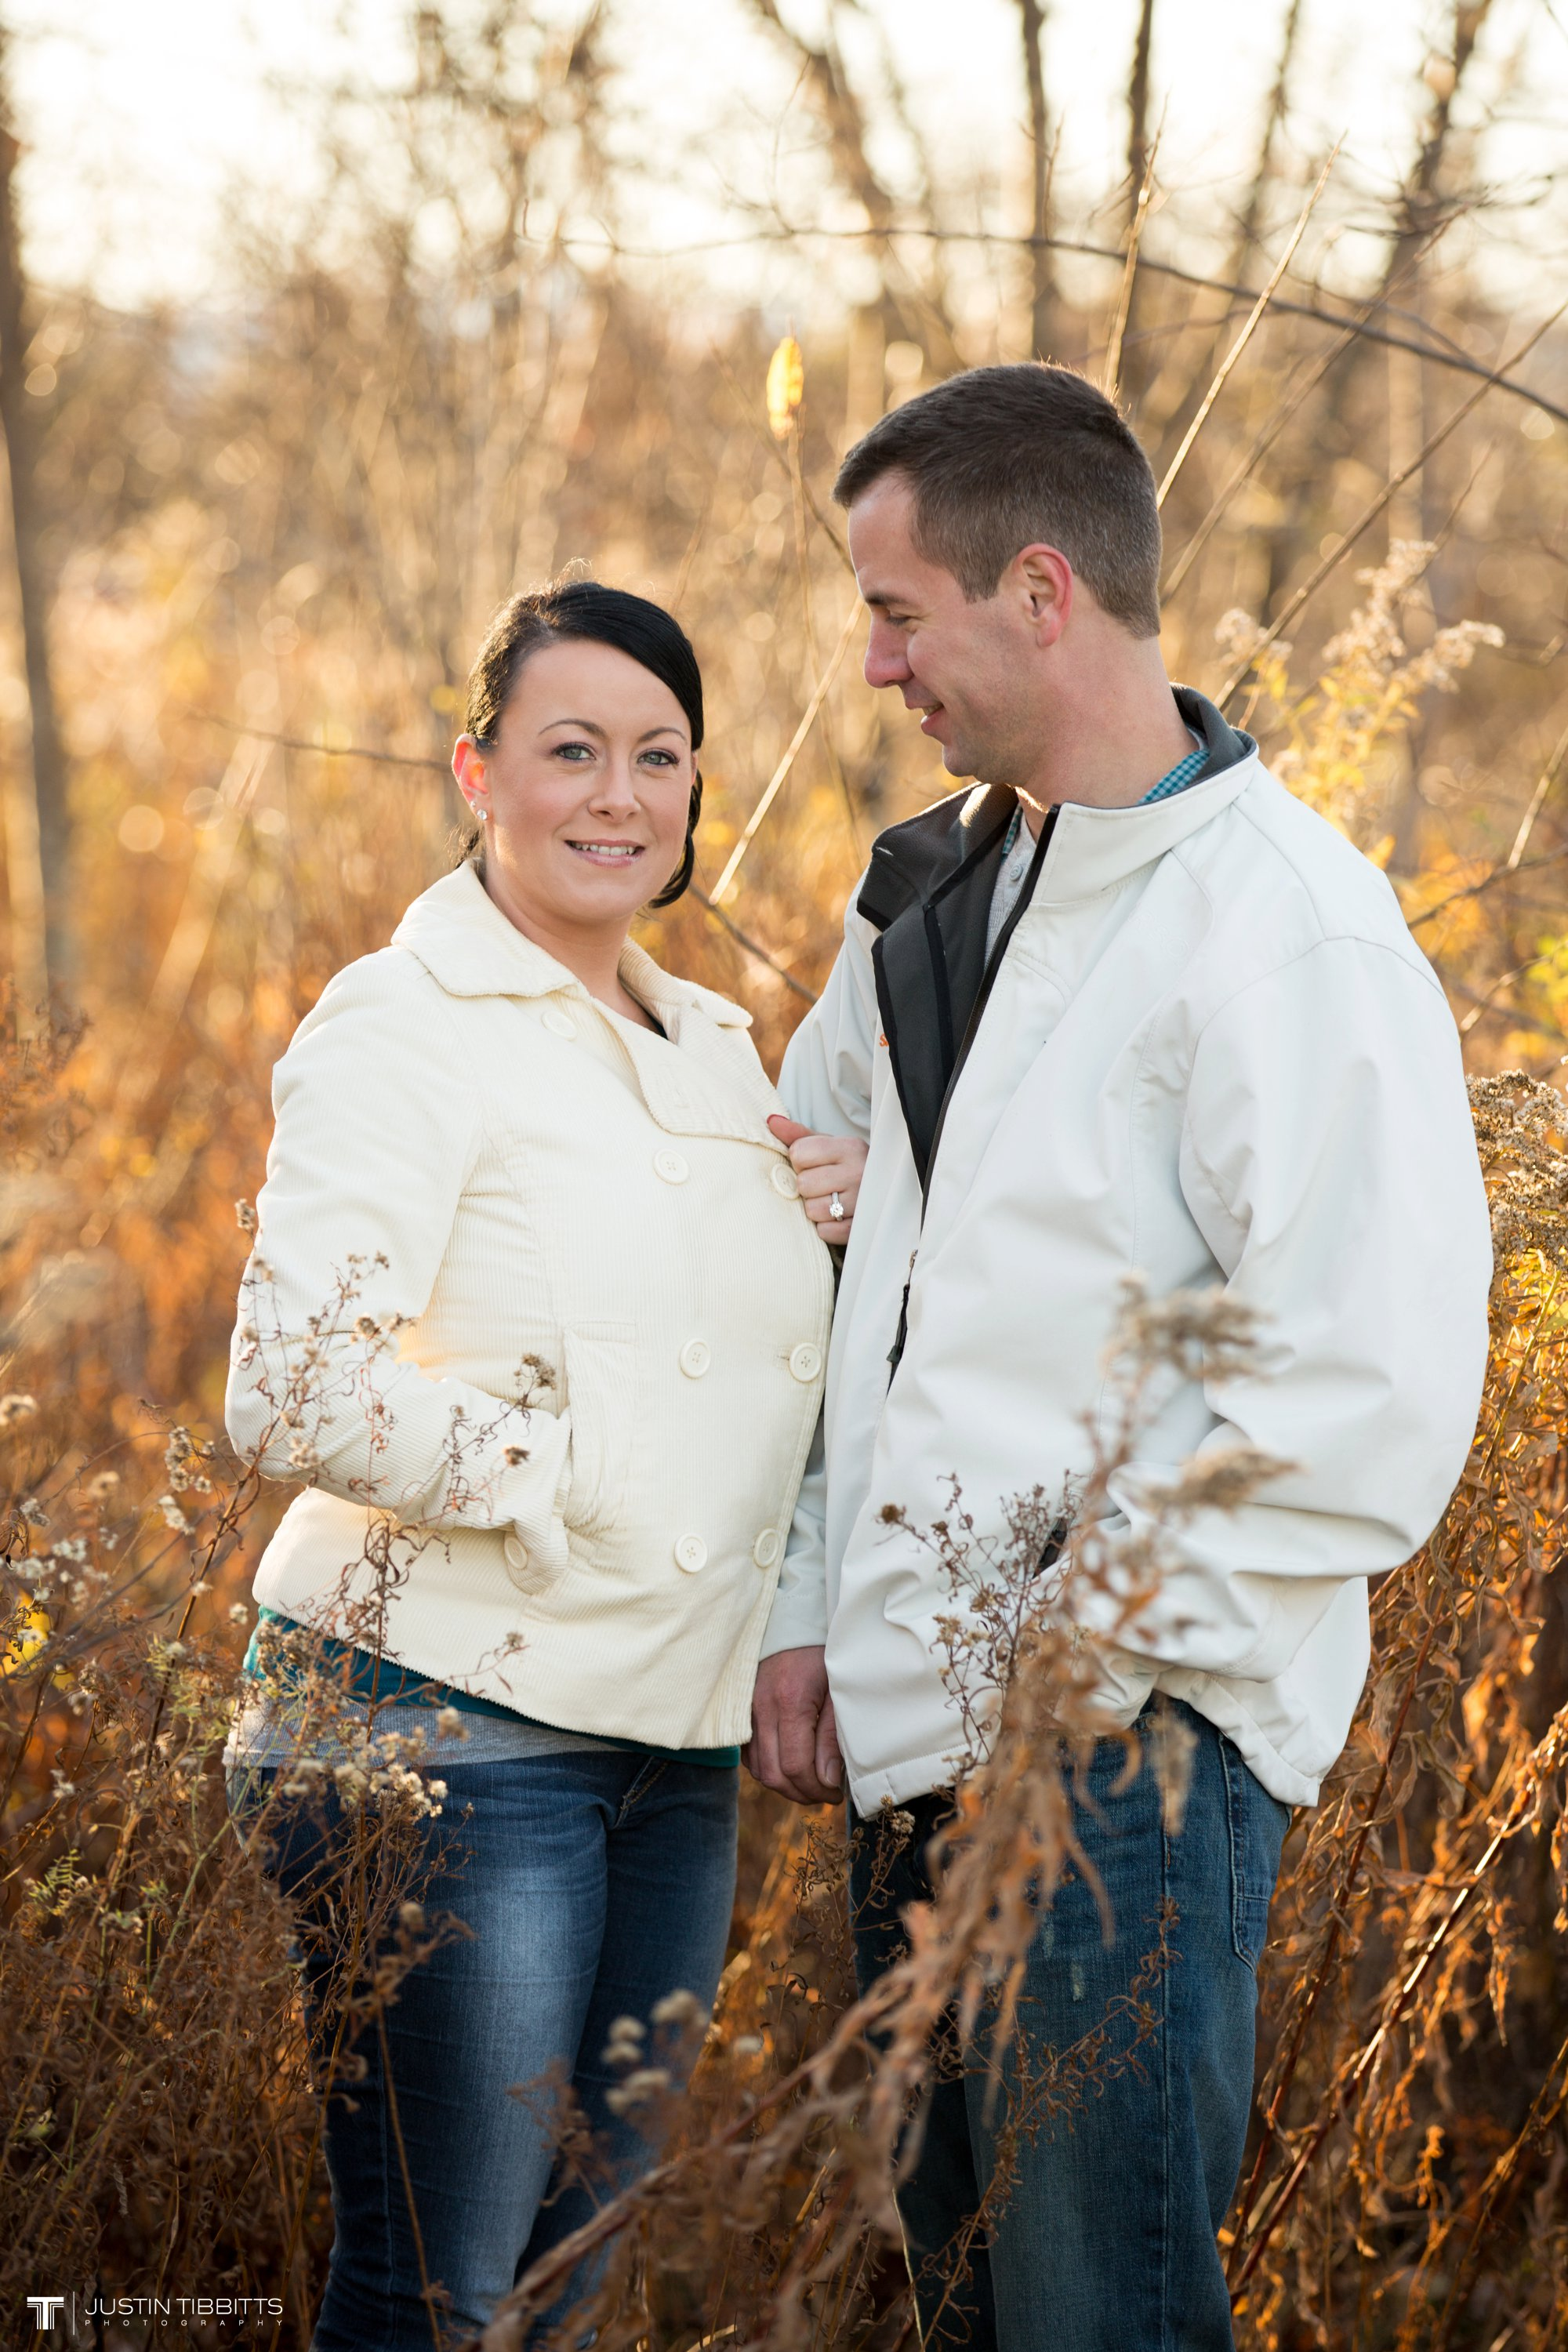 Justin Tibbitts Photography Kristie and Gregs Windham Mountain Resort Engagement Shoot-102